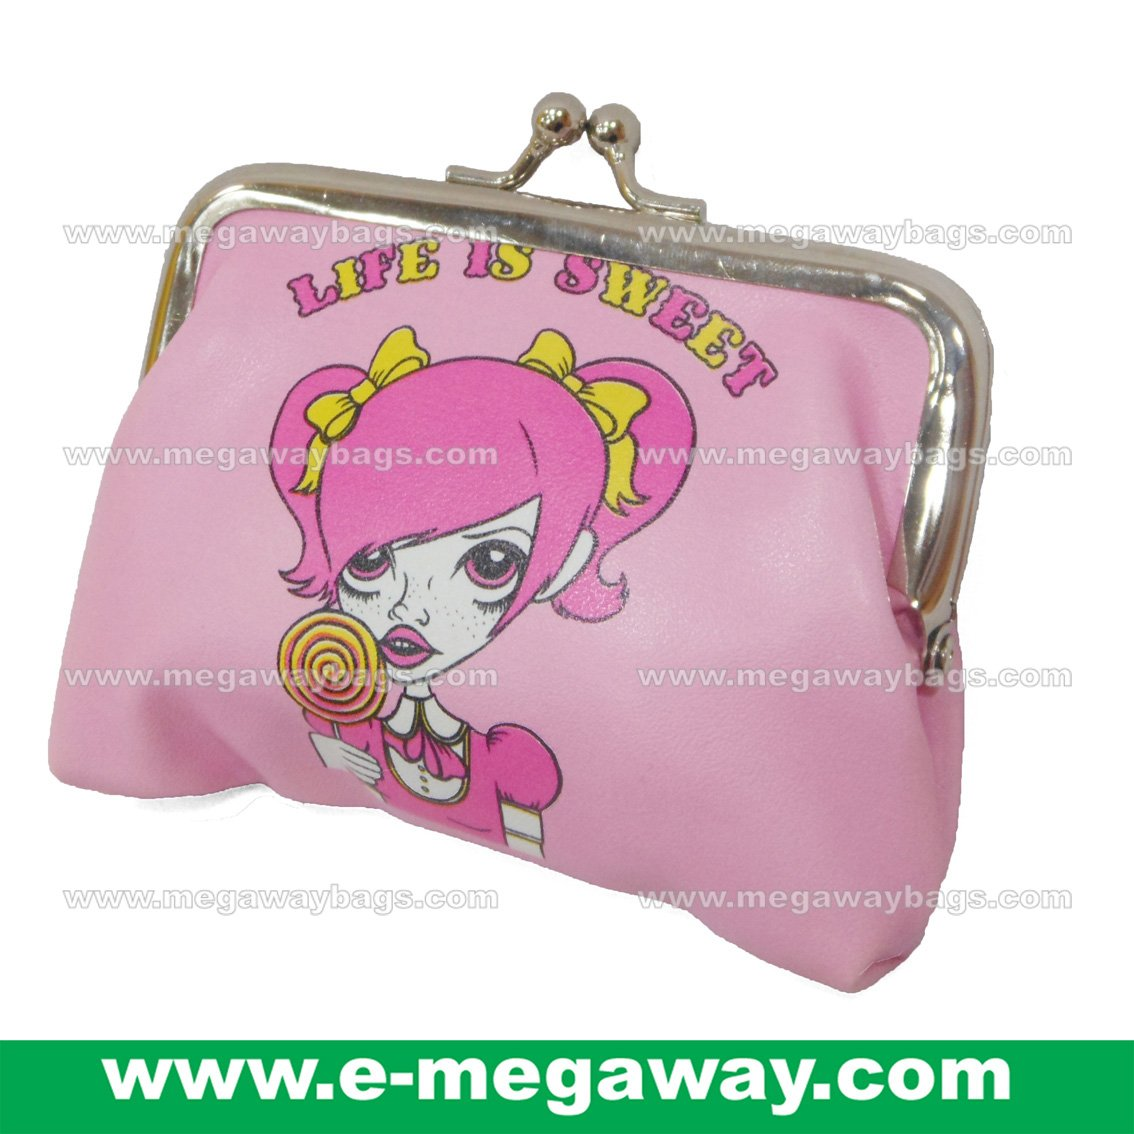 Life is Sweet Clip Purse Bags Wallets Character Print Cartoon Girls MegawayBags #CC-1056